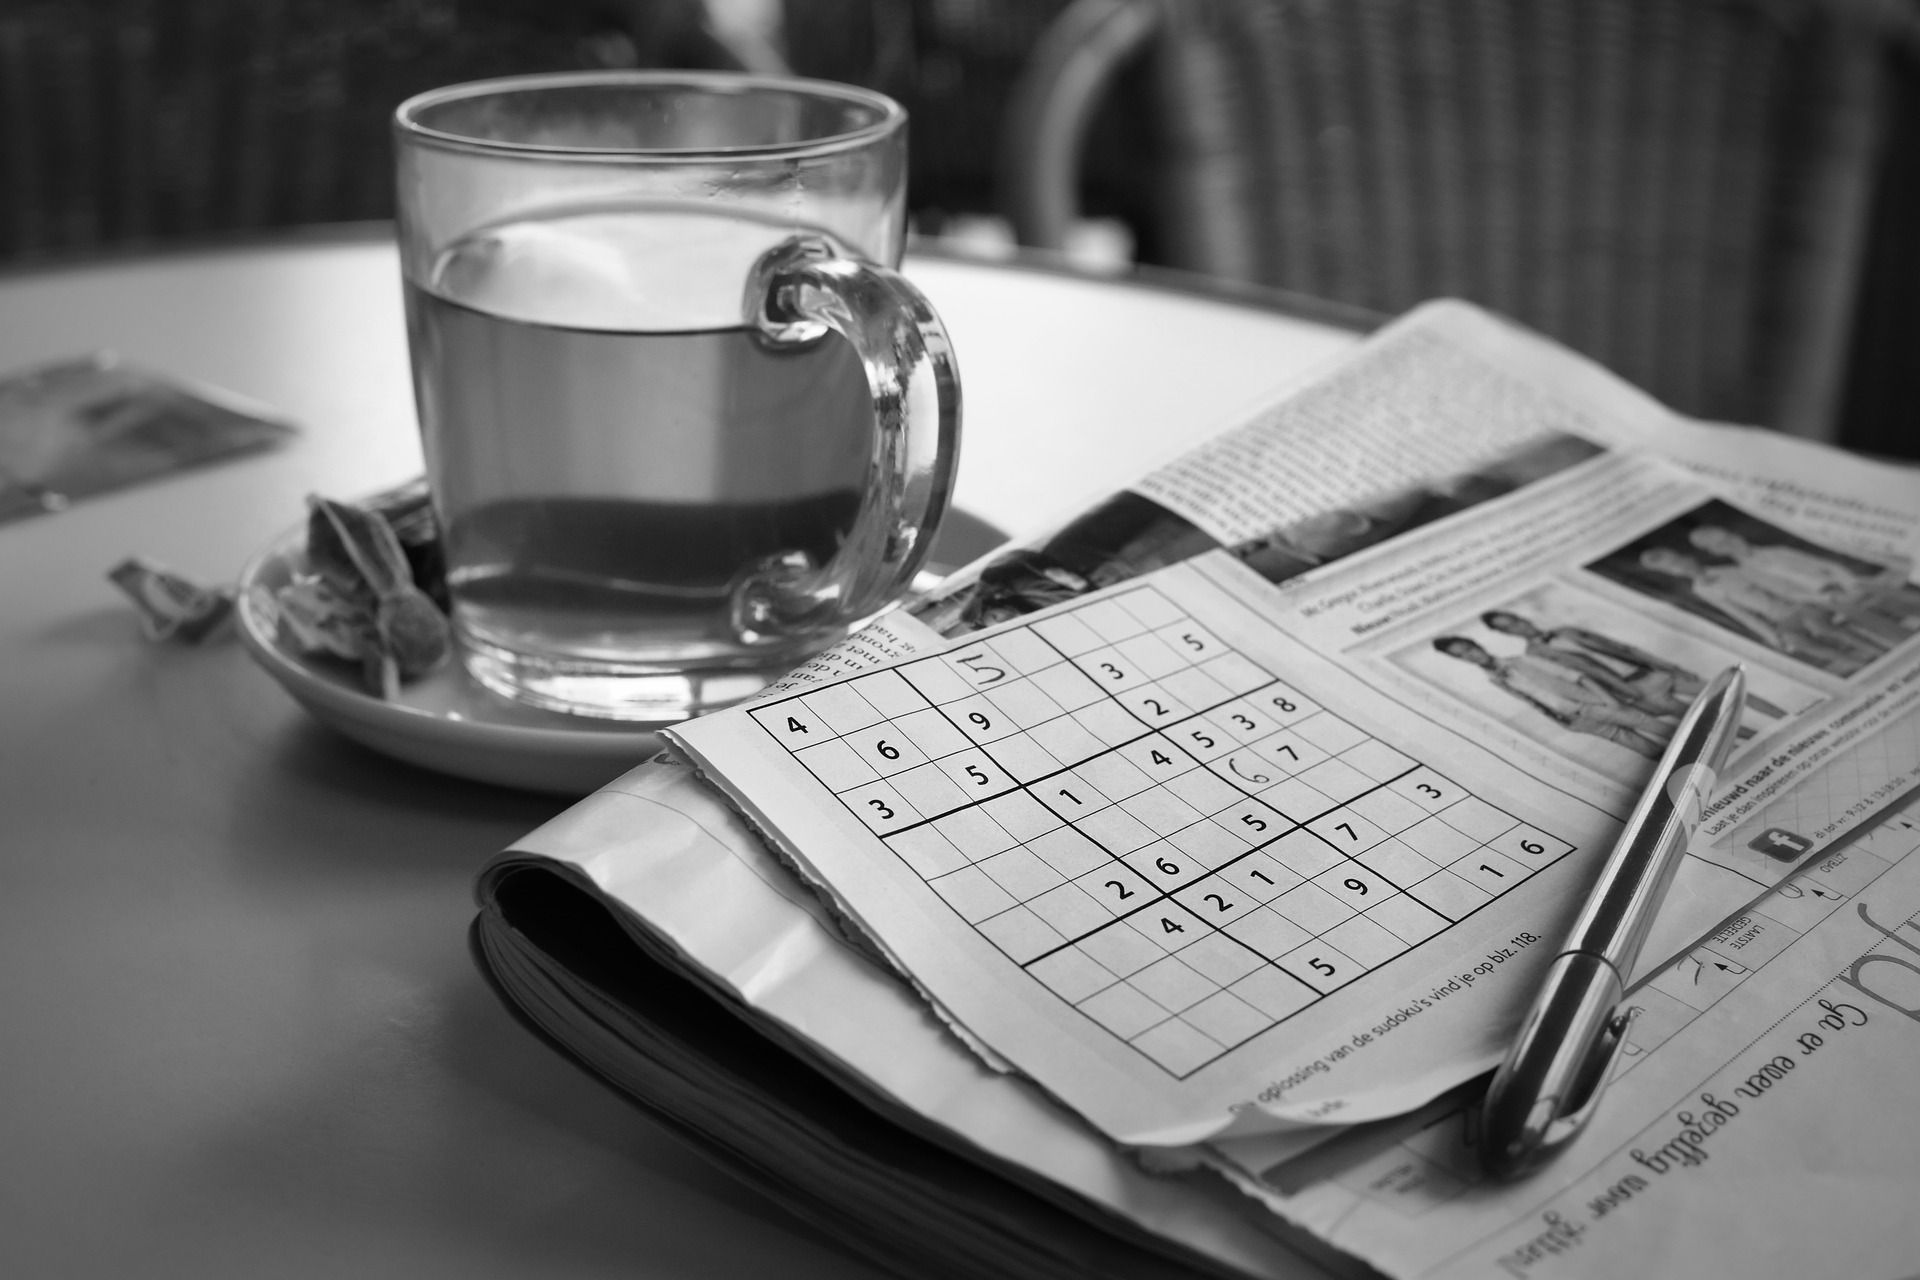 How to Play and Win Sudoku - Using Math and Machine Learning